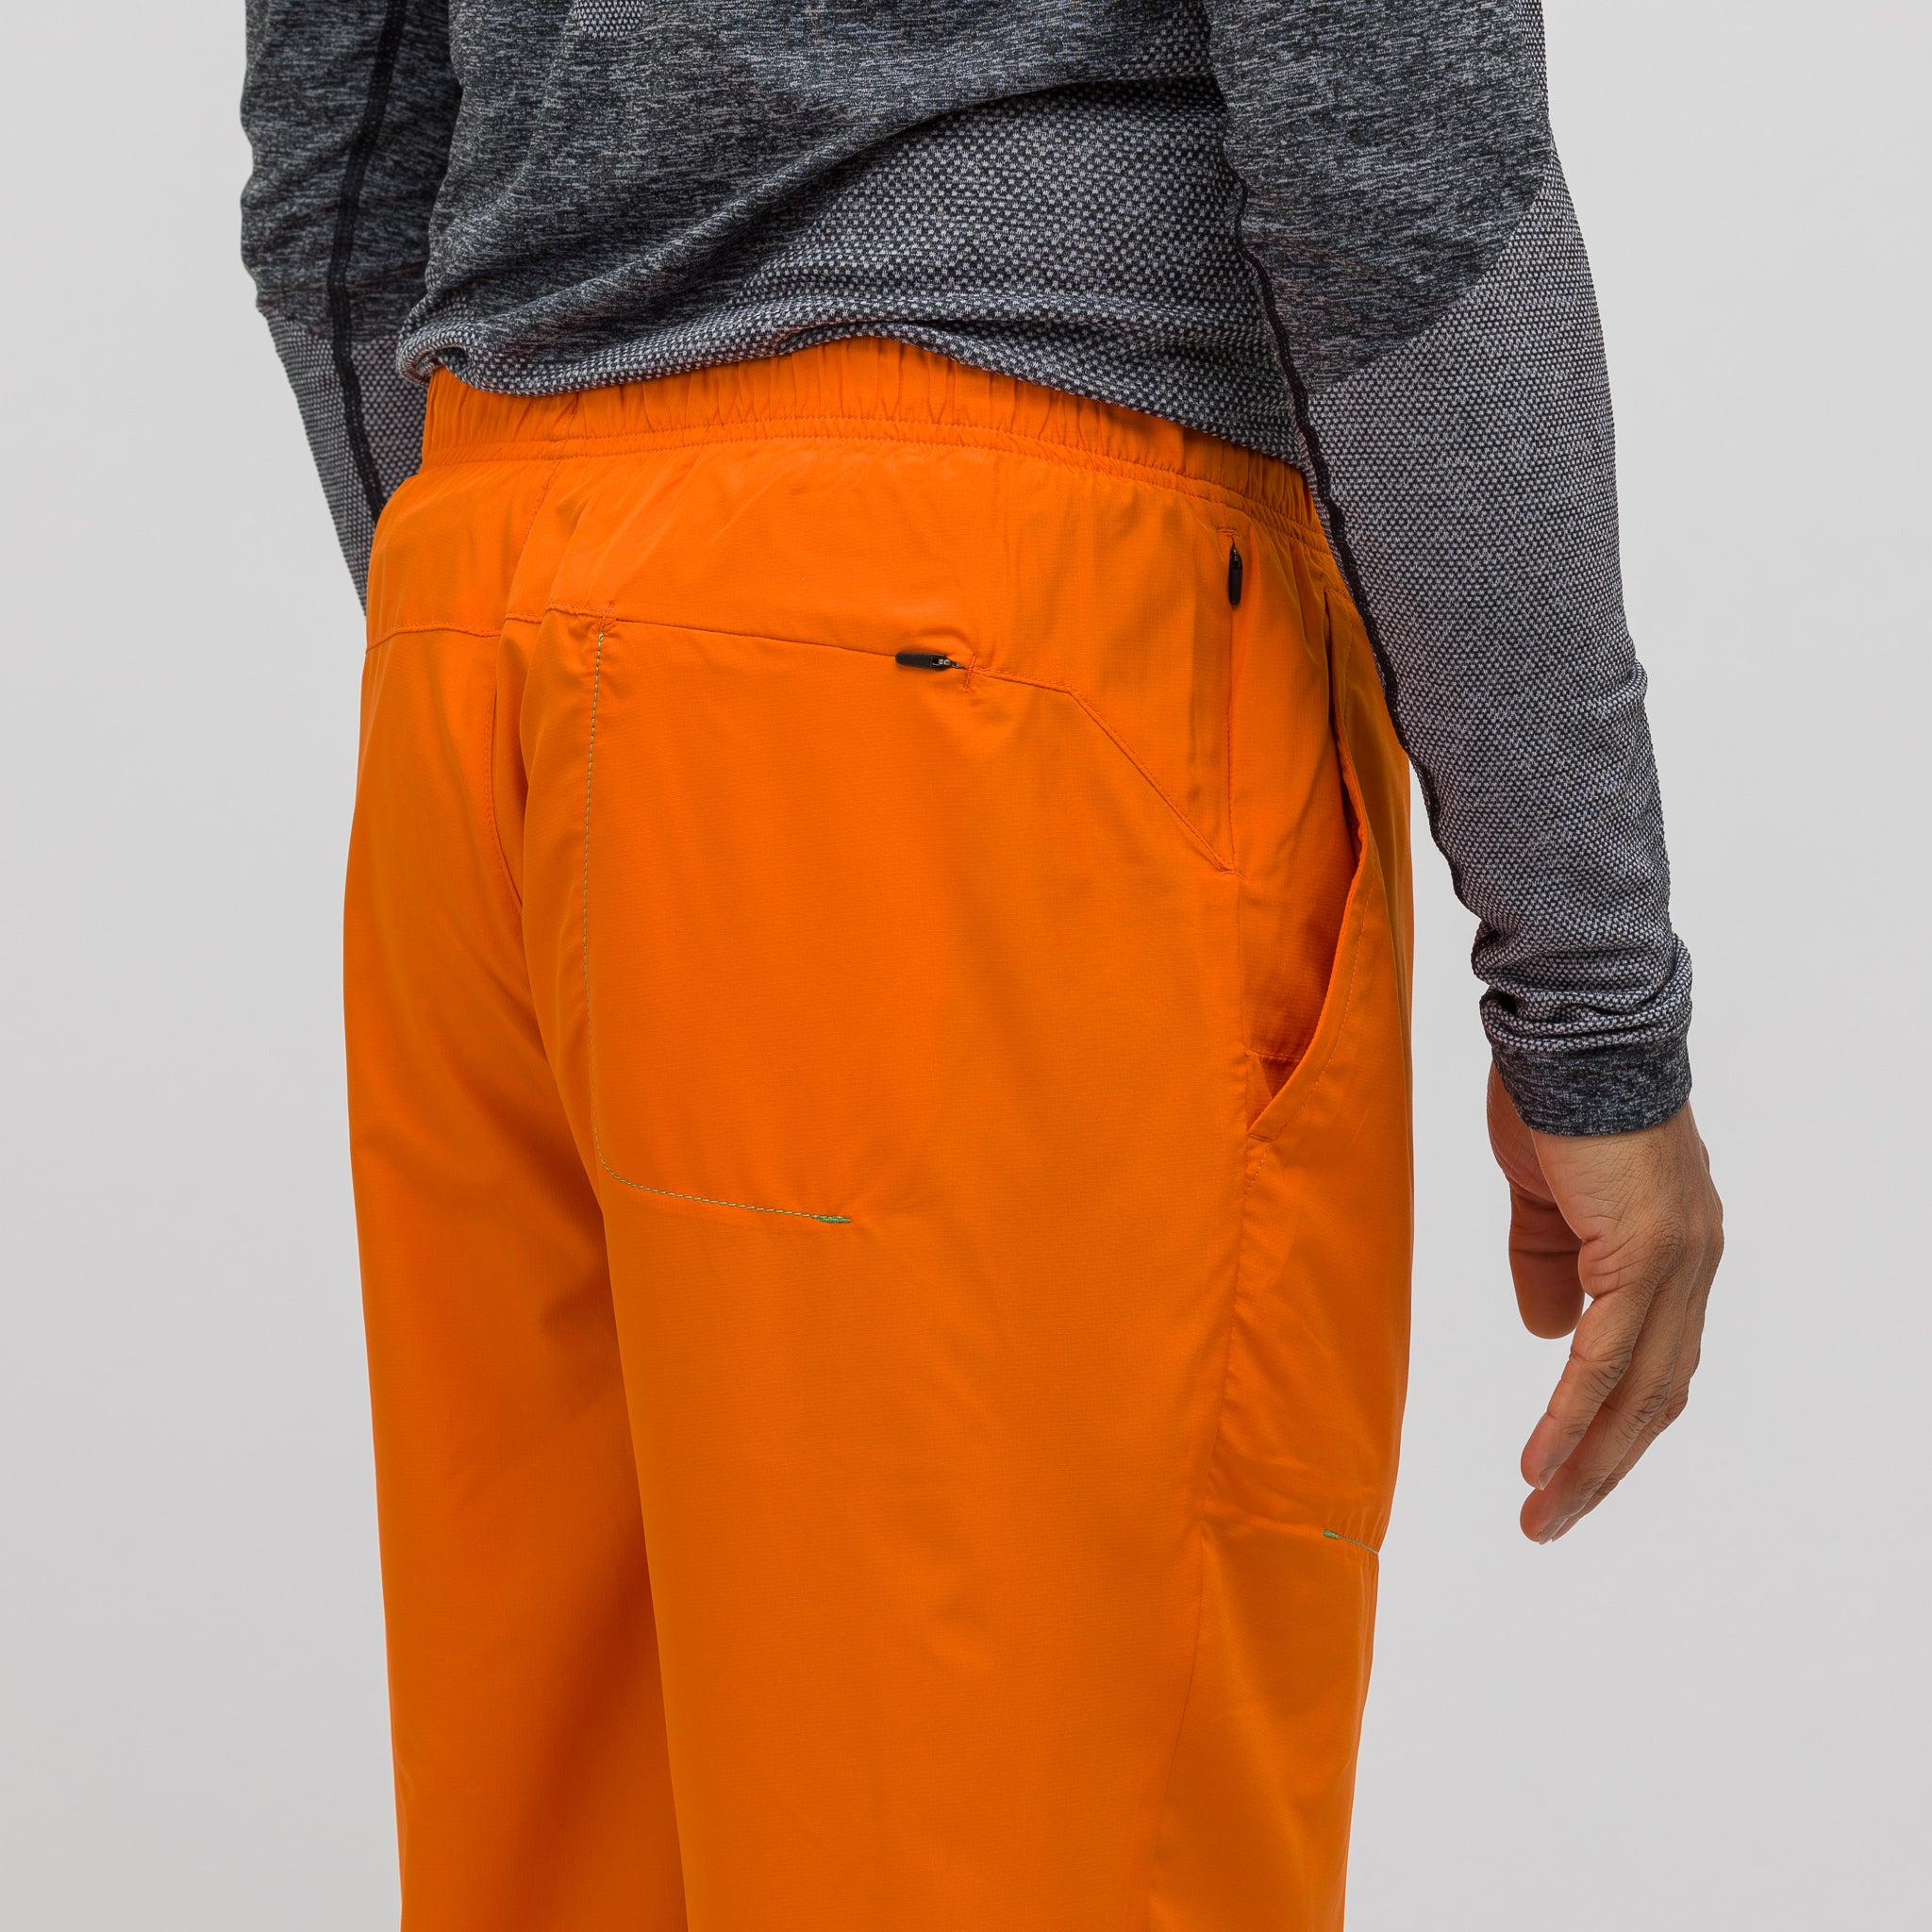 x Kiko Kostadinov Woven Pant in Orange